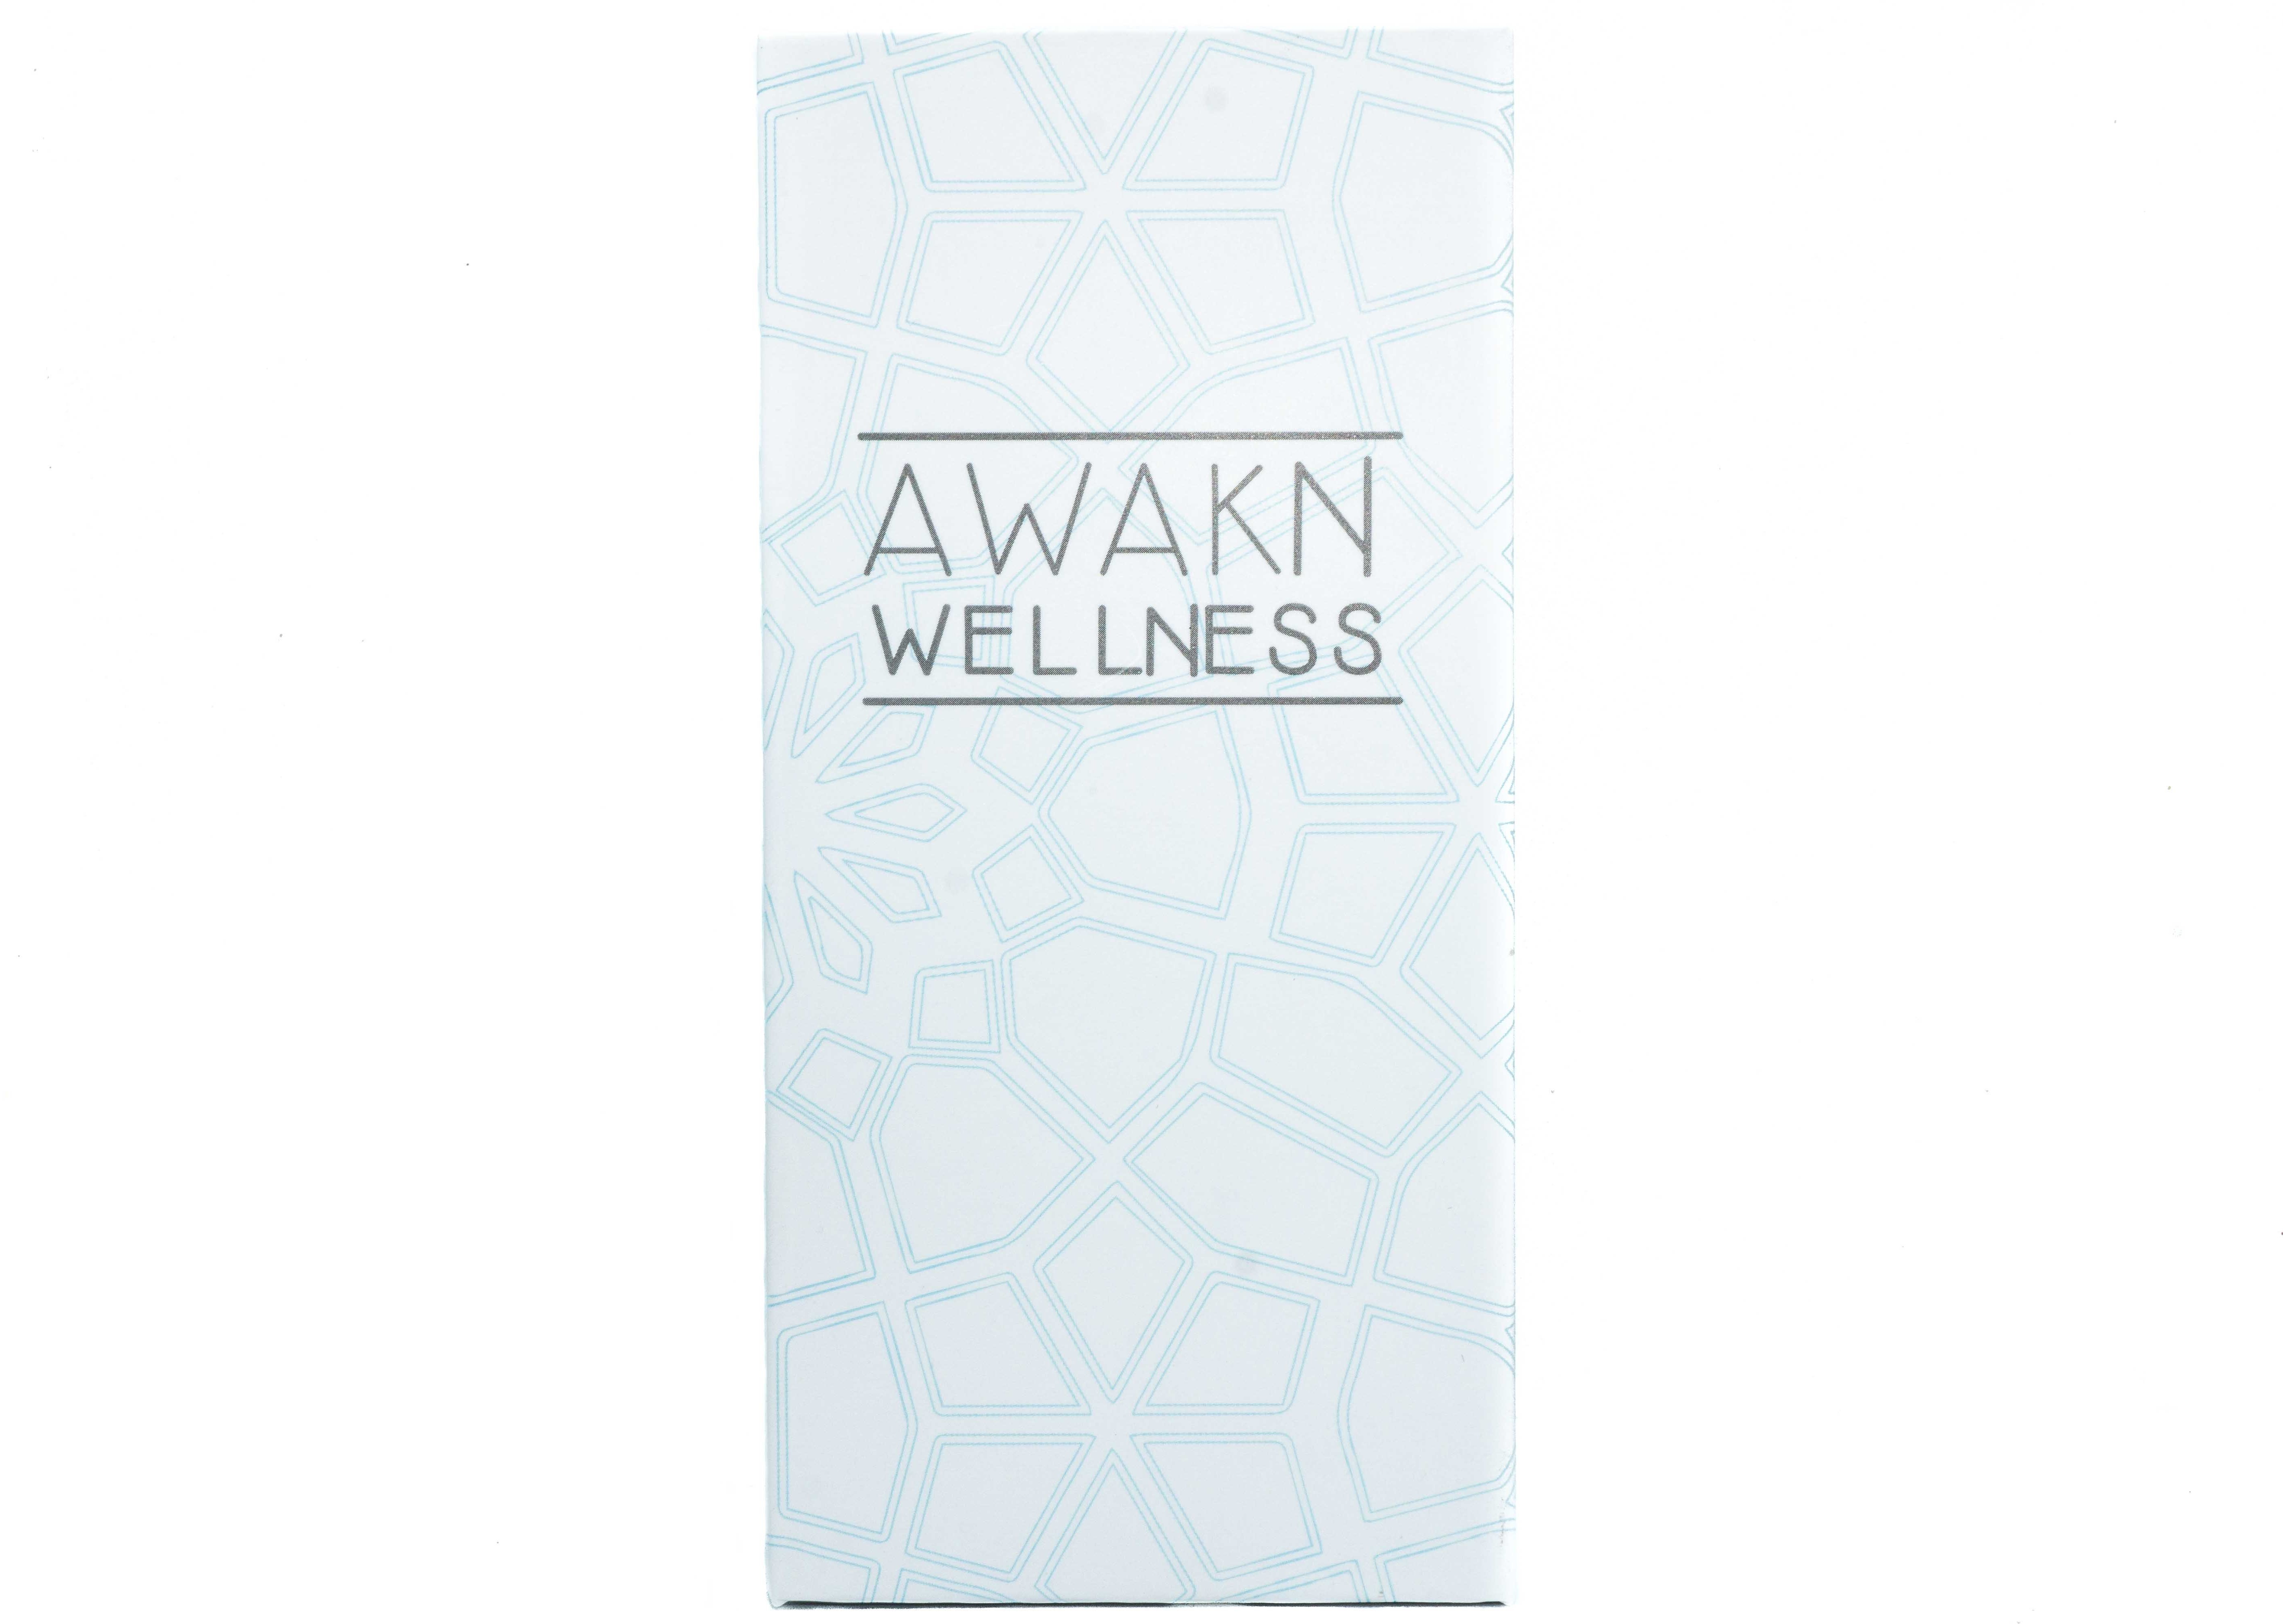 Mango (Full Spectrum) CBD Vape Kit by Awakn Wellness 01347